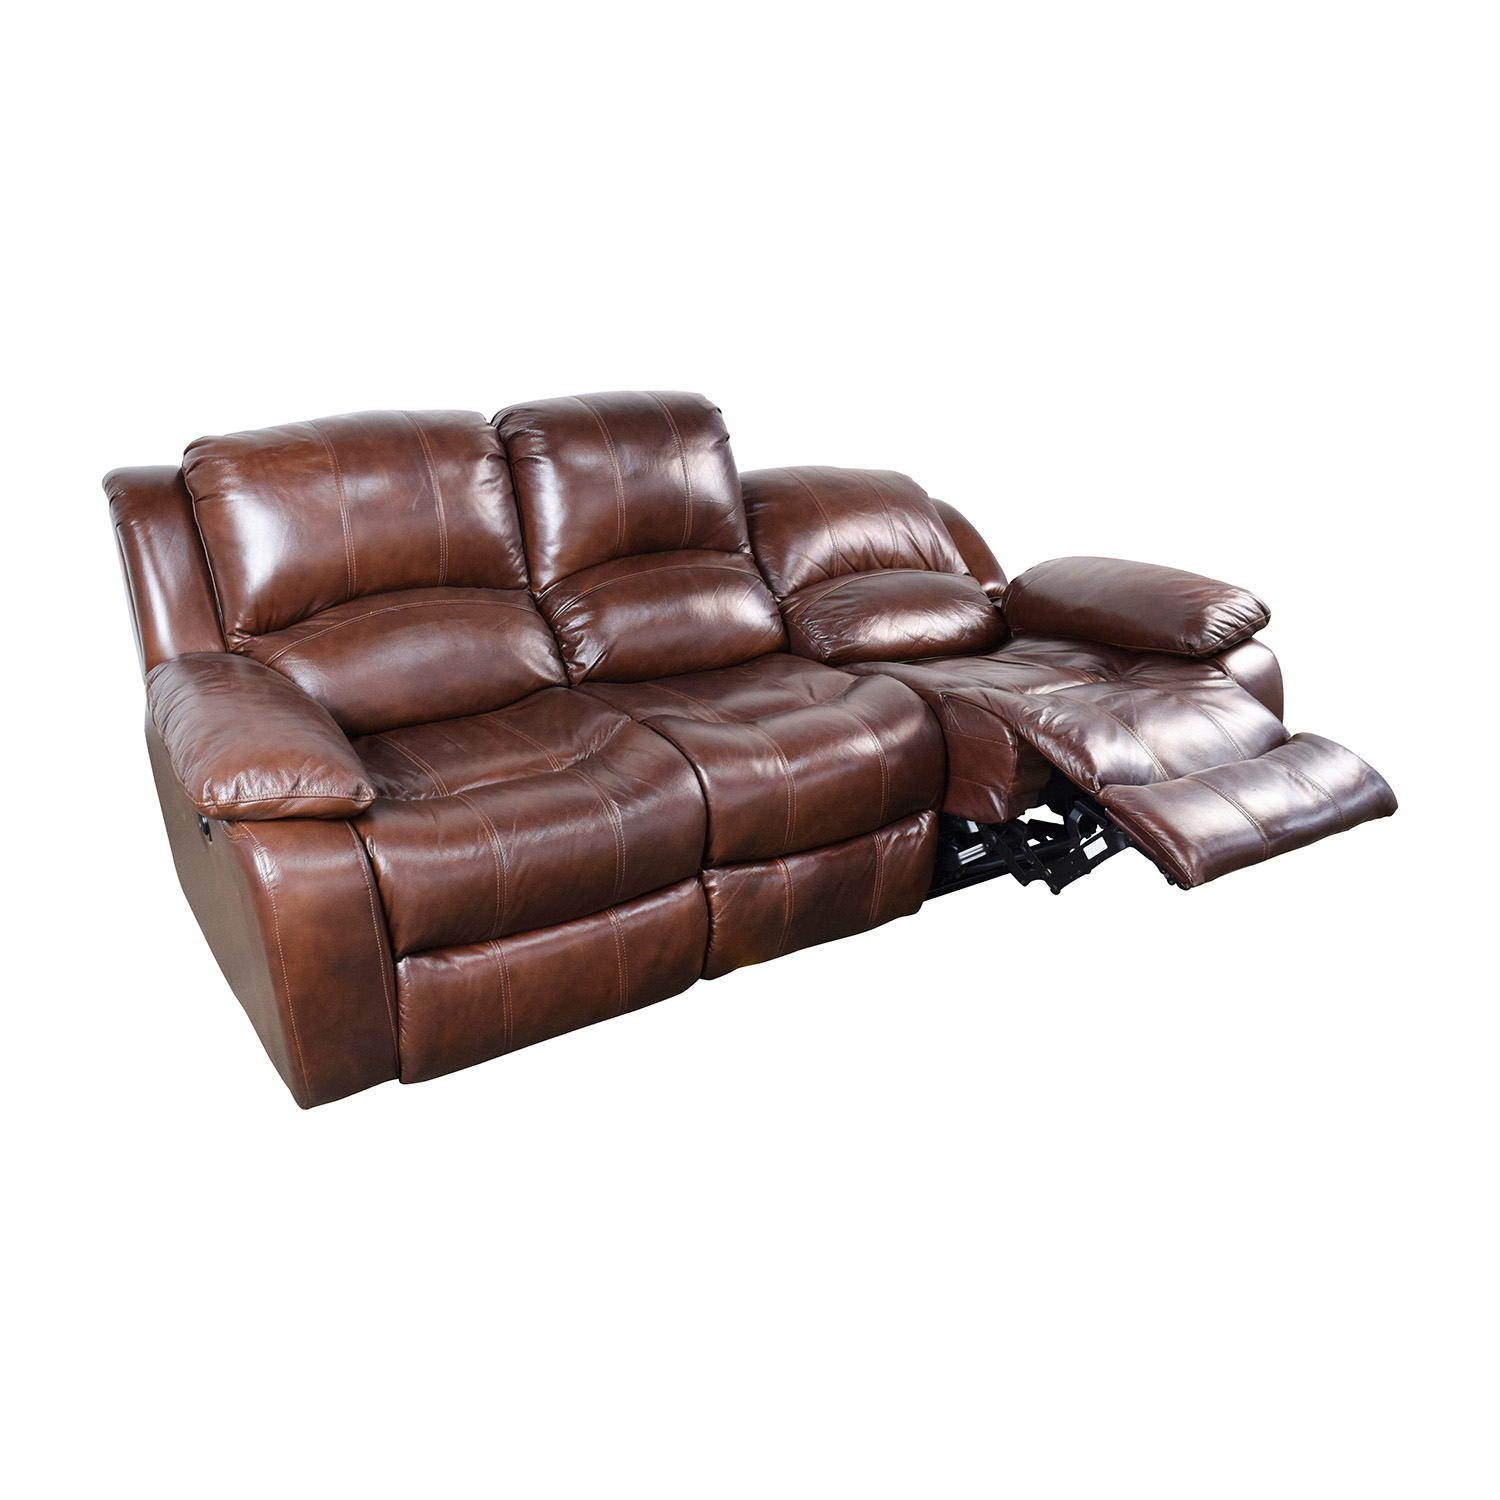 51 off raymour and flanigan raymour flanigan bryant ii leather power reclining sofa sofas Leather reclining sofa loveseat